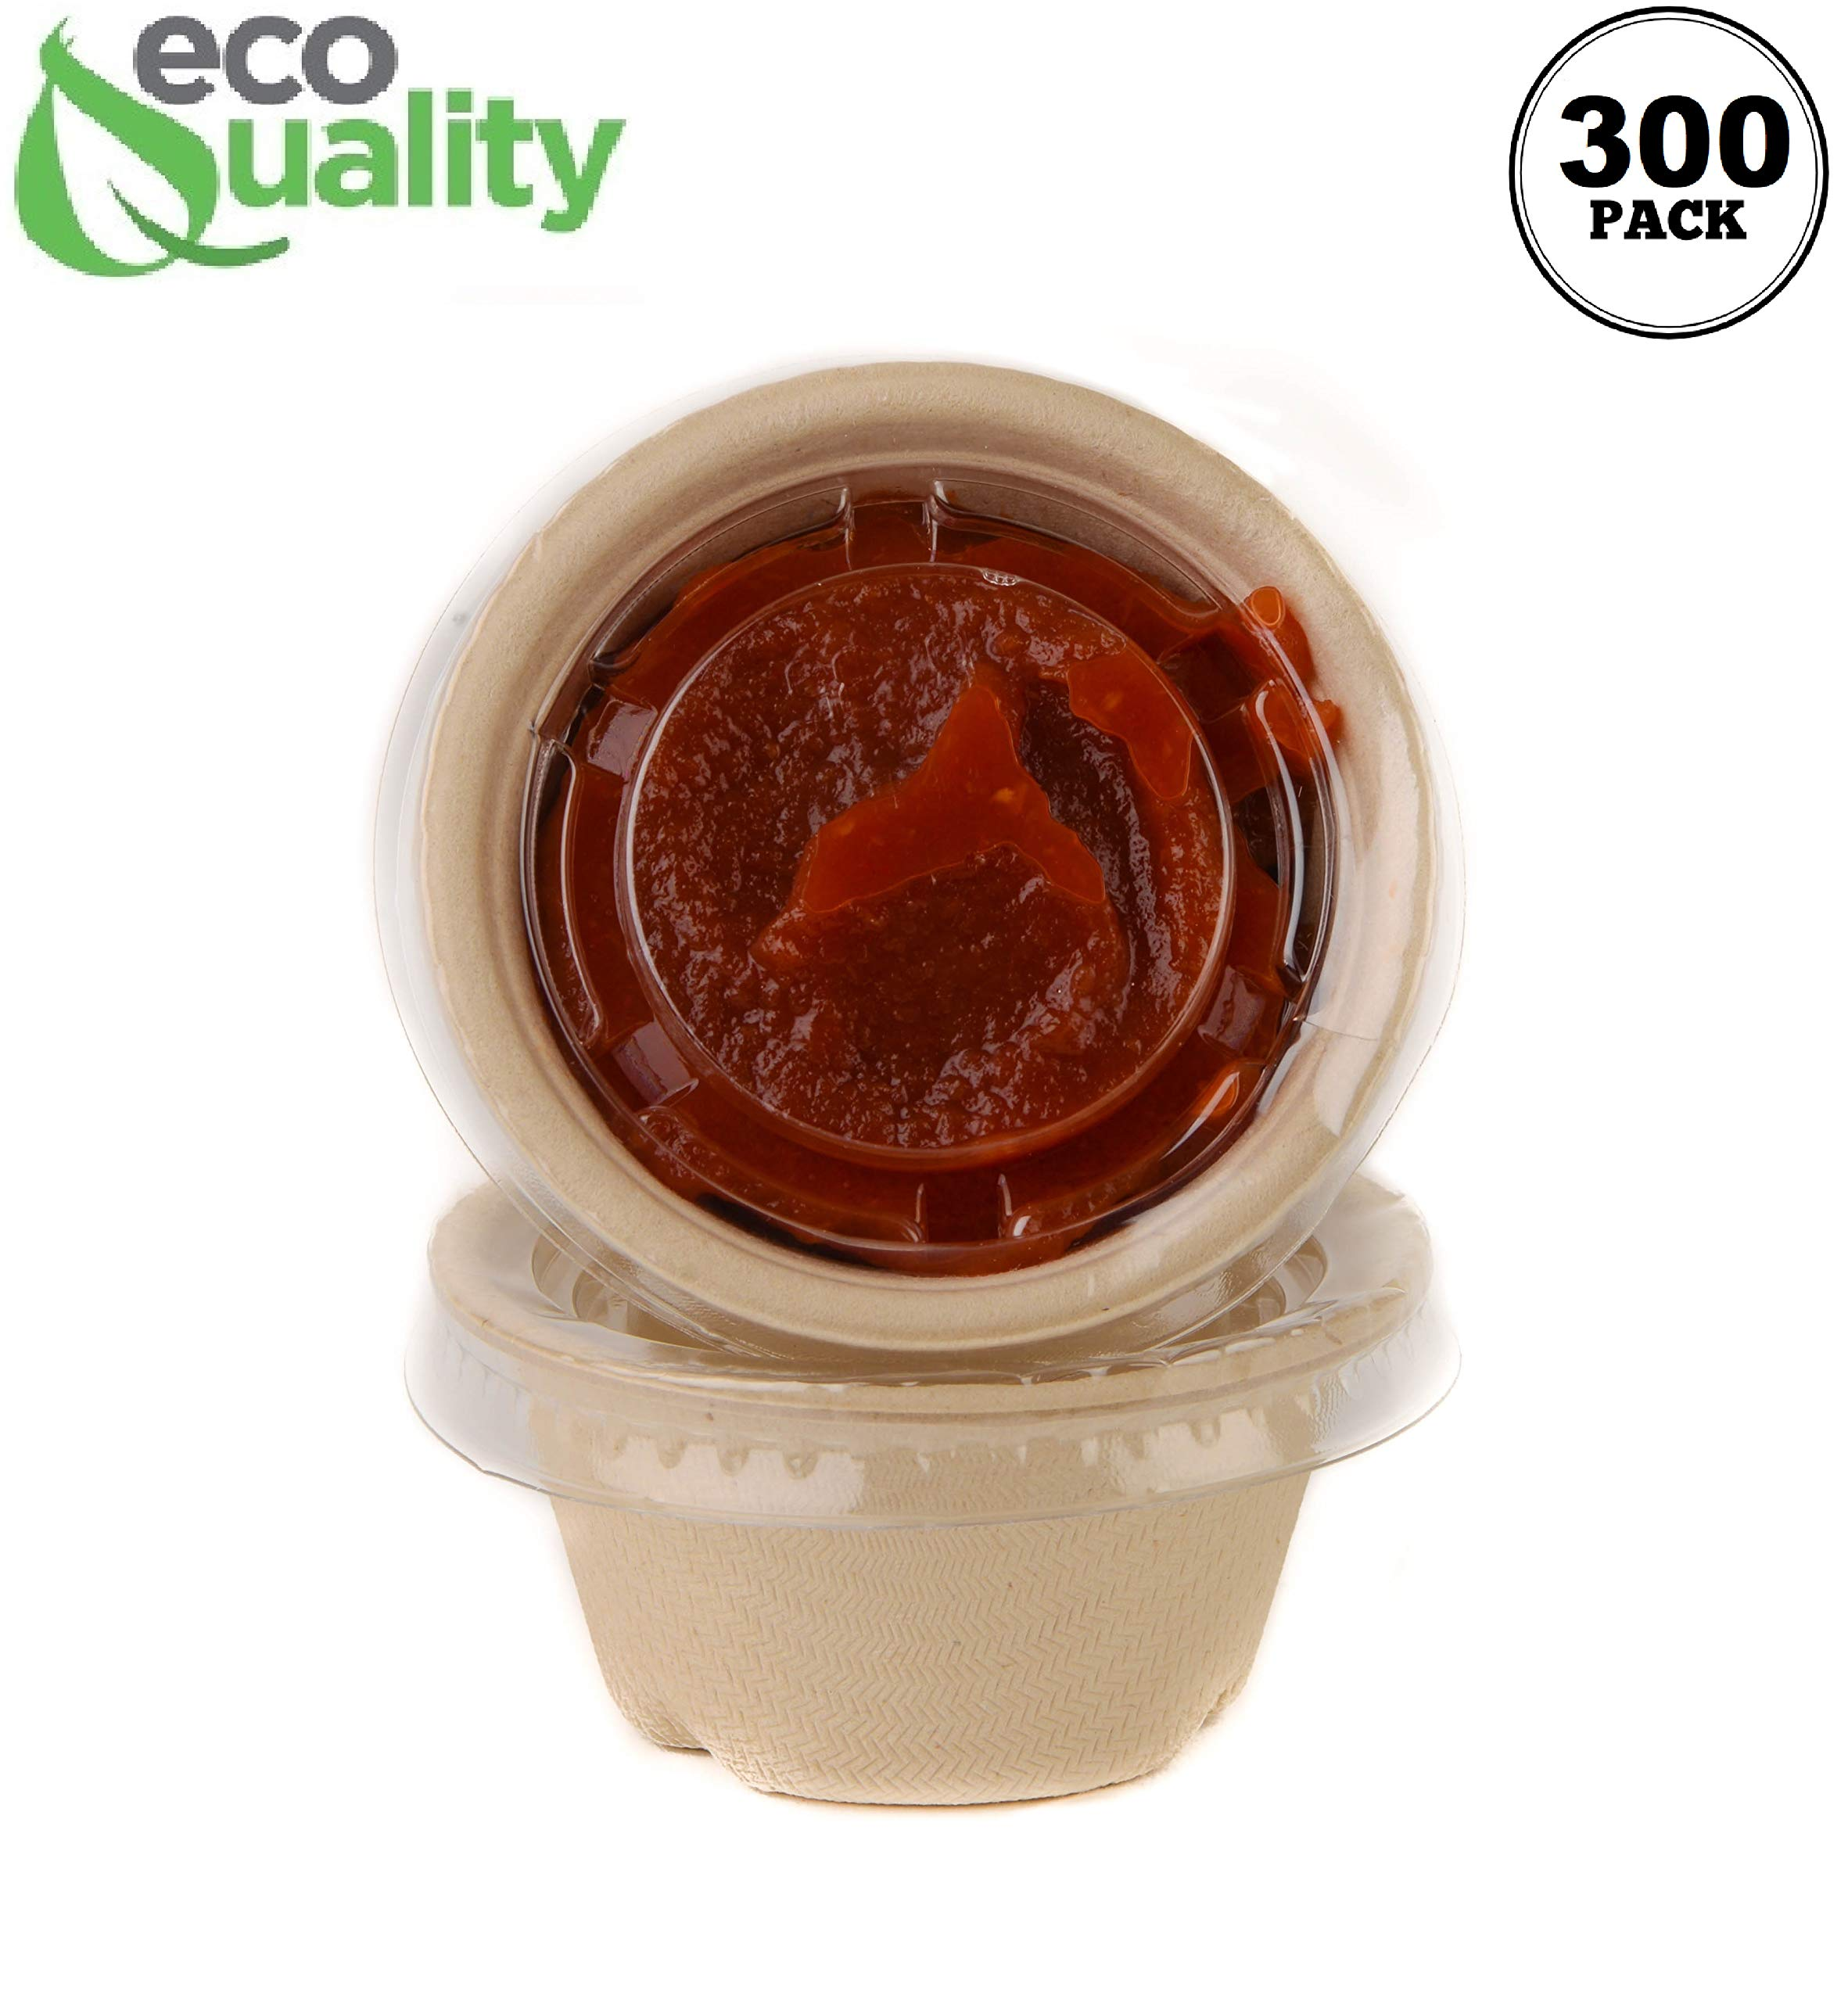 [300 Pack] 2 Oz Compostable Condiment Souffle Bagasse Cups with Lids - Portion Cup with Lid Sugarcane, Biodegradable Perfect for Sauces, Samples, Condiments, Slime, Jello Shot, Food Storage by EcoQuality